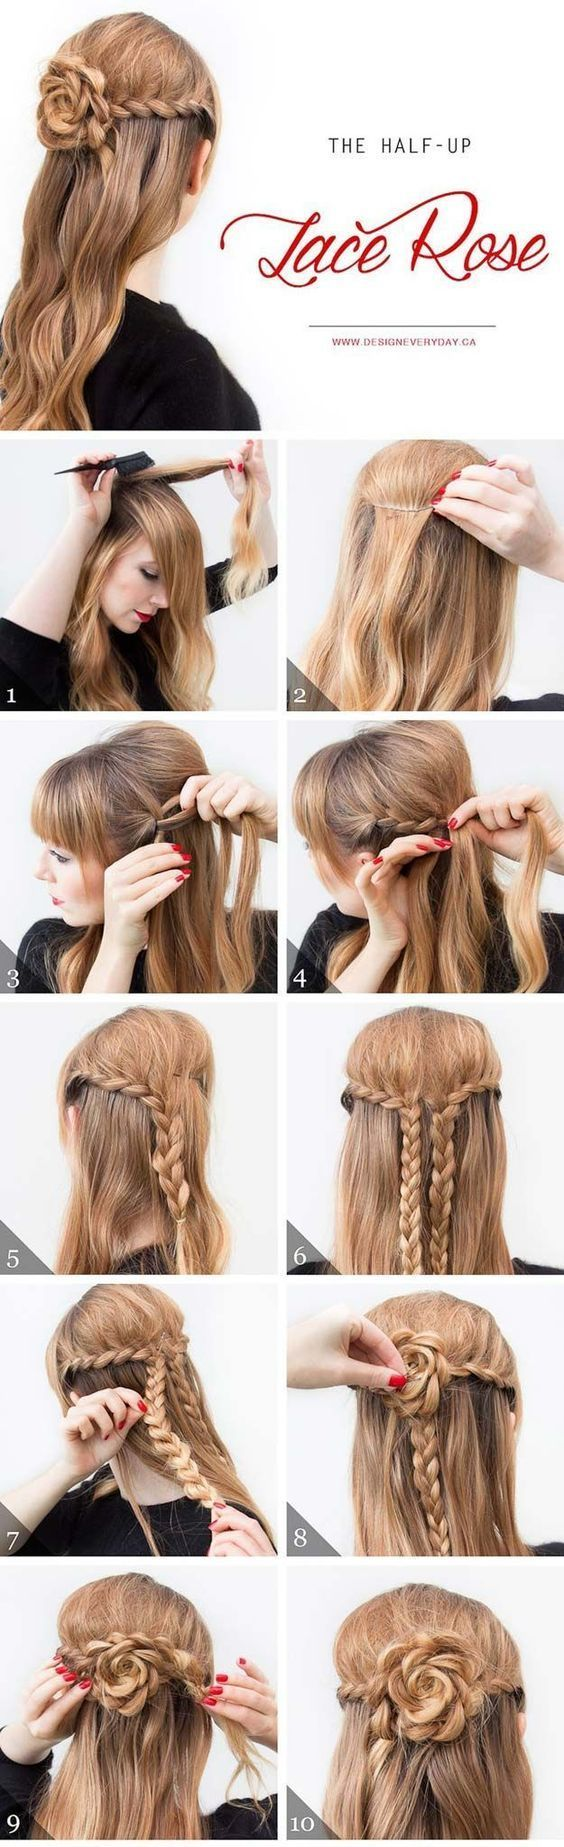 Cool and Easy DIY Hairstyles - The Half Up Lace Rose - Quick and Easy Ideas for Back to School Styles for Medium, Short and Long Hair - Fun Tips and Best Step by Step Tutorials for Teens, Prom, Weddings, Special Occasions and Work. Up dos, Braids, Top Kno: